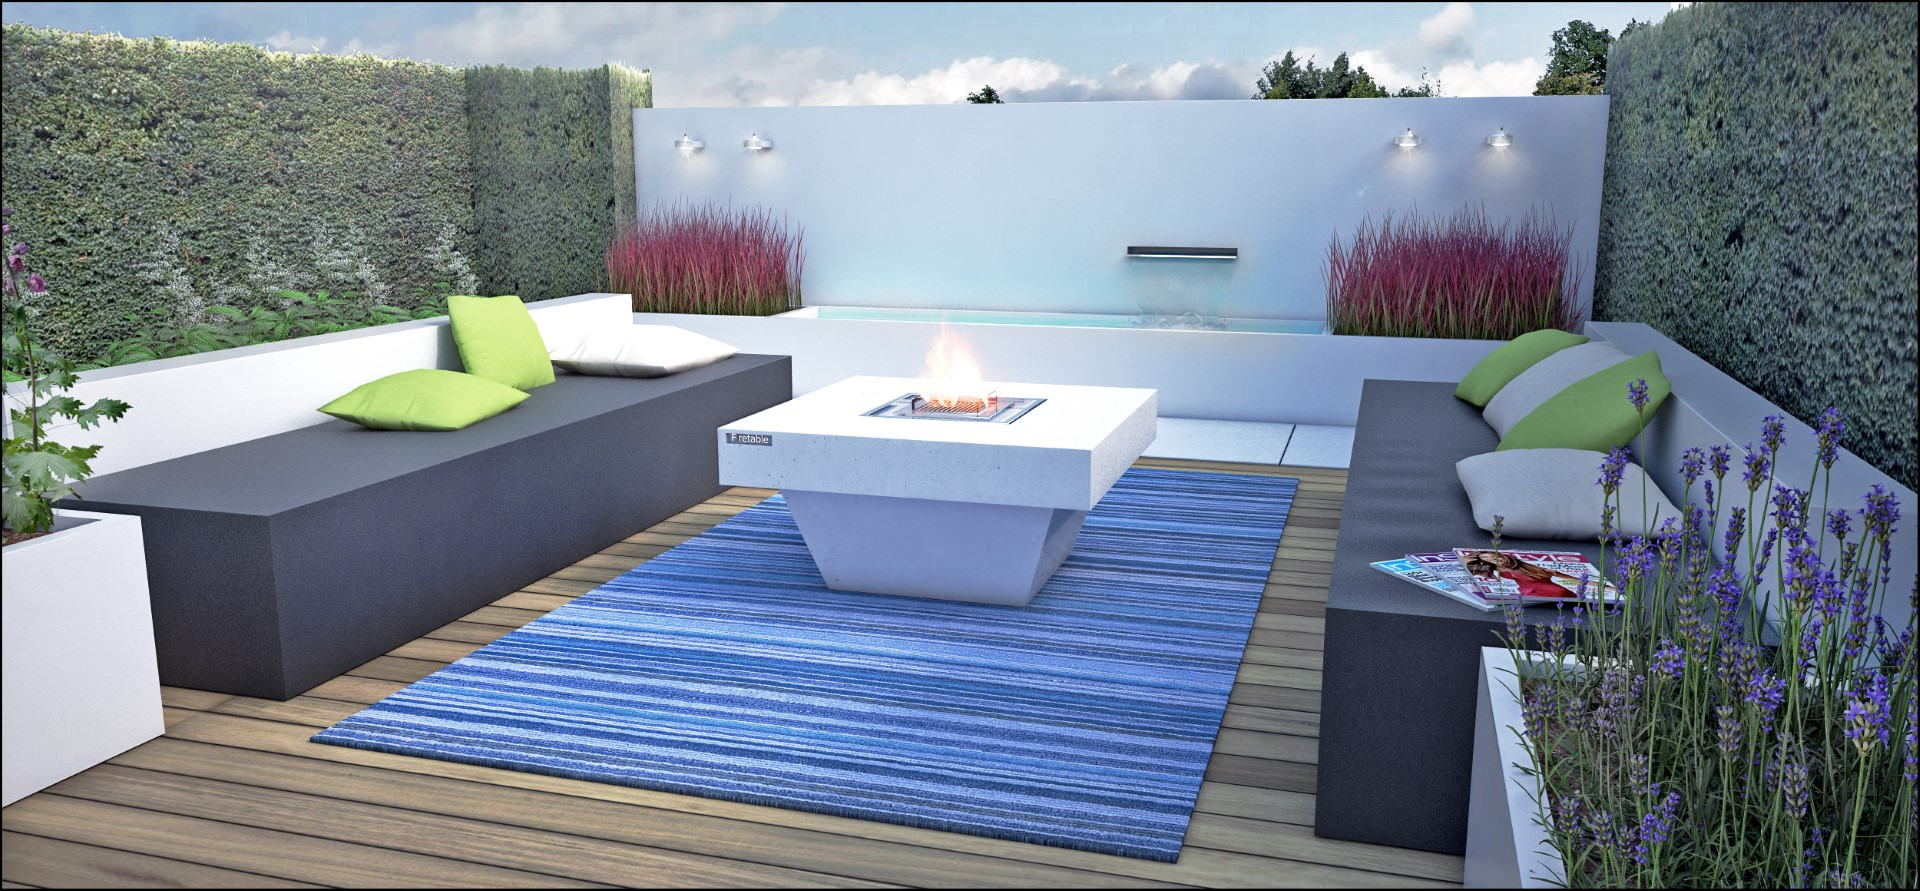 Eco tuinarchitectengroep 3d projecten lounge tuin ninove - Moderne lounges fotos ...